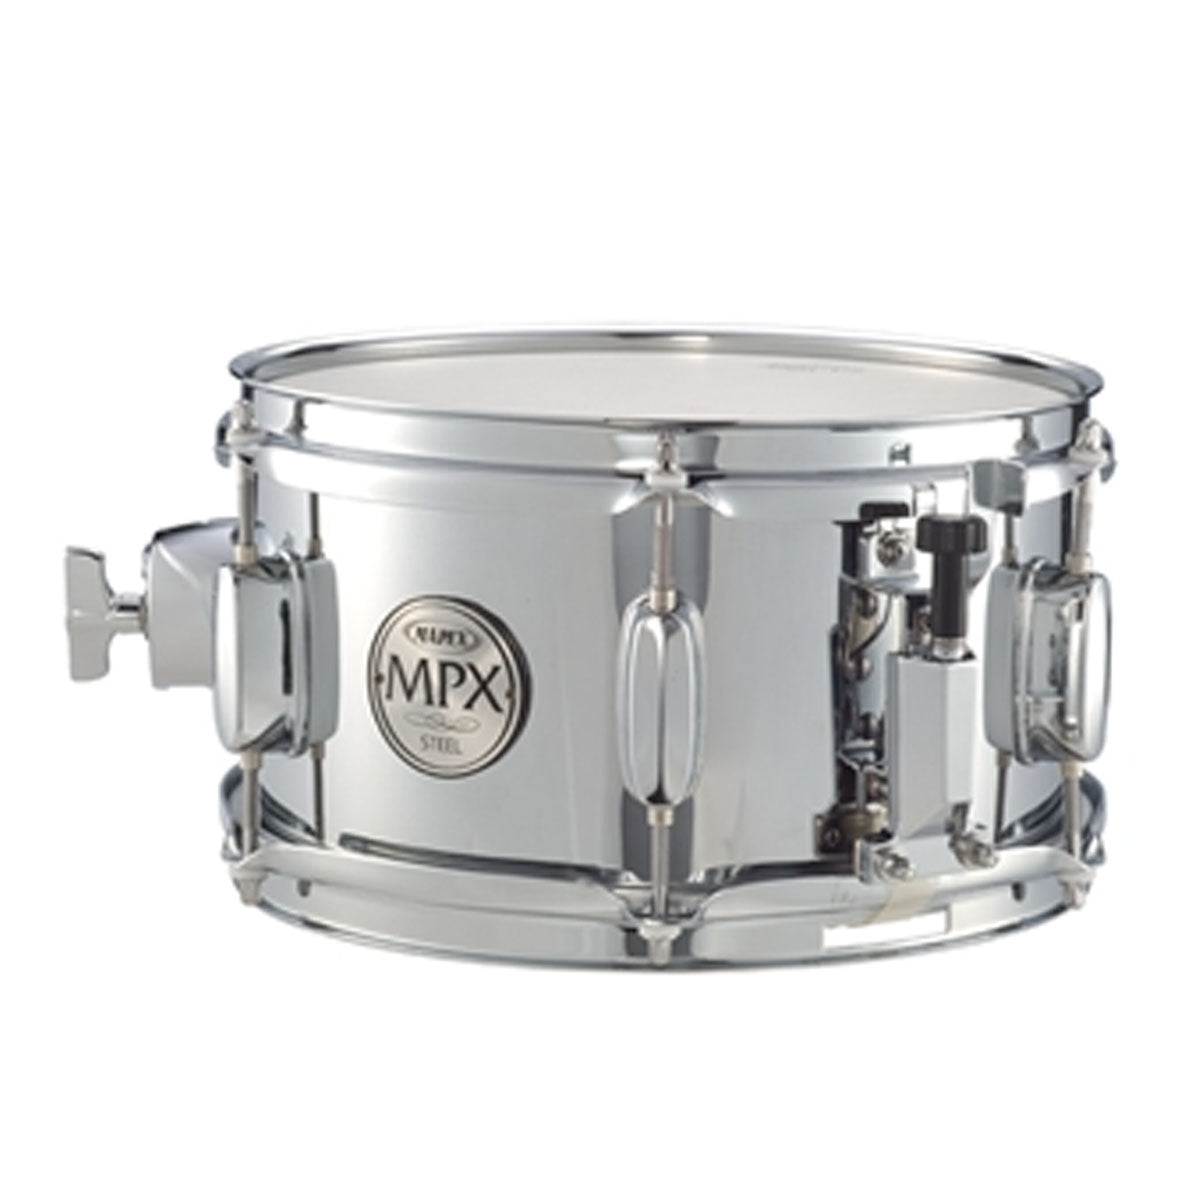 Mapex MPX Snare Drum Steel Cheeky Little 10 Popcorn 10x 5.5inch